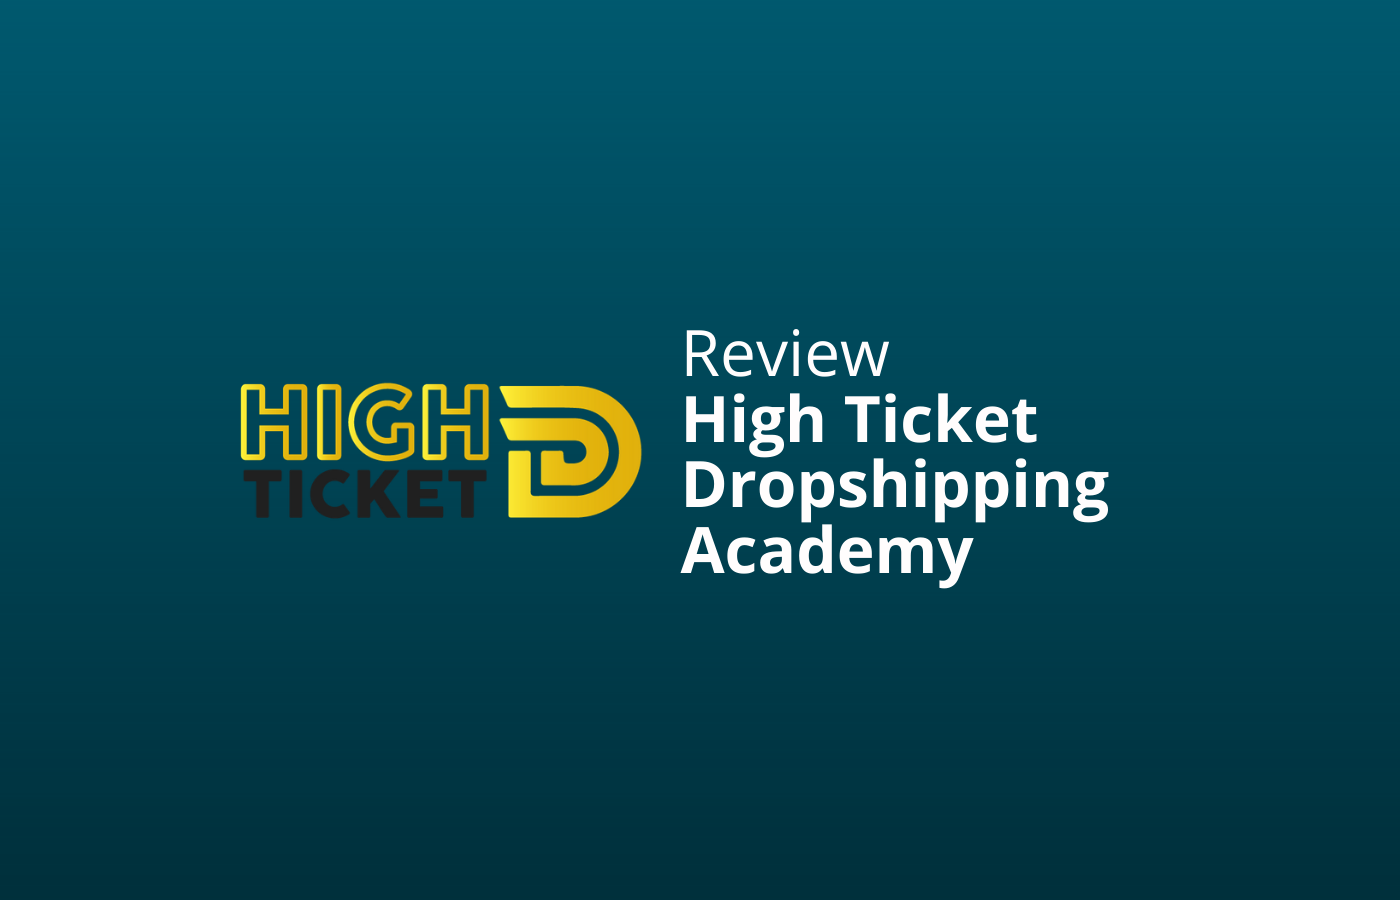 high ticket dropshipping academy review en ervaringen